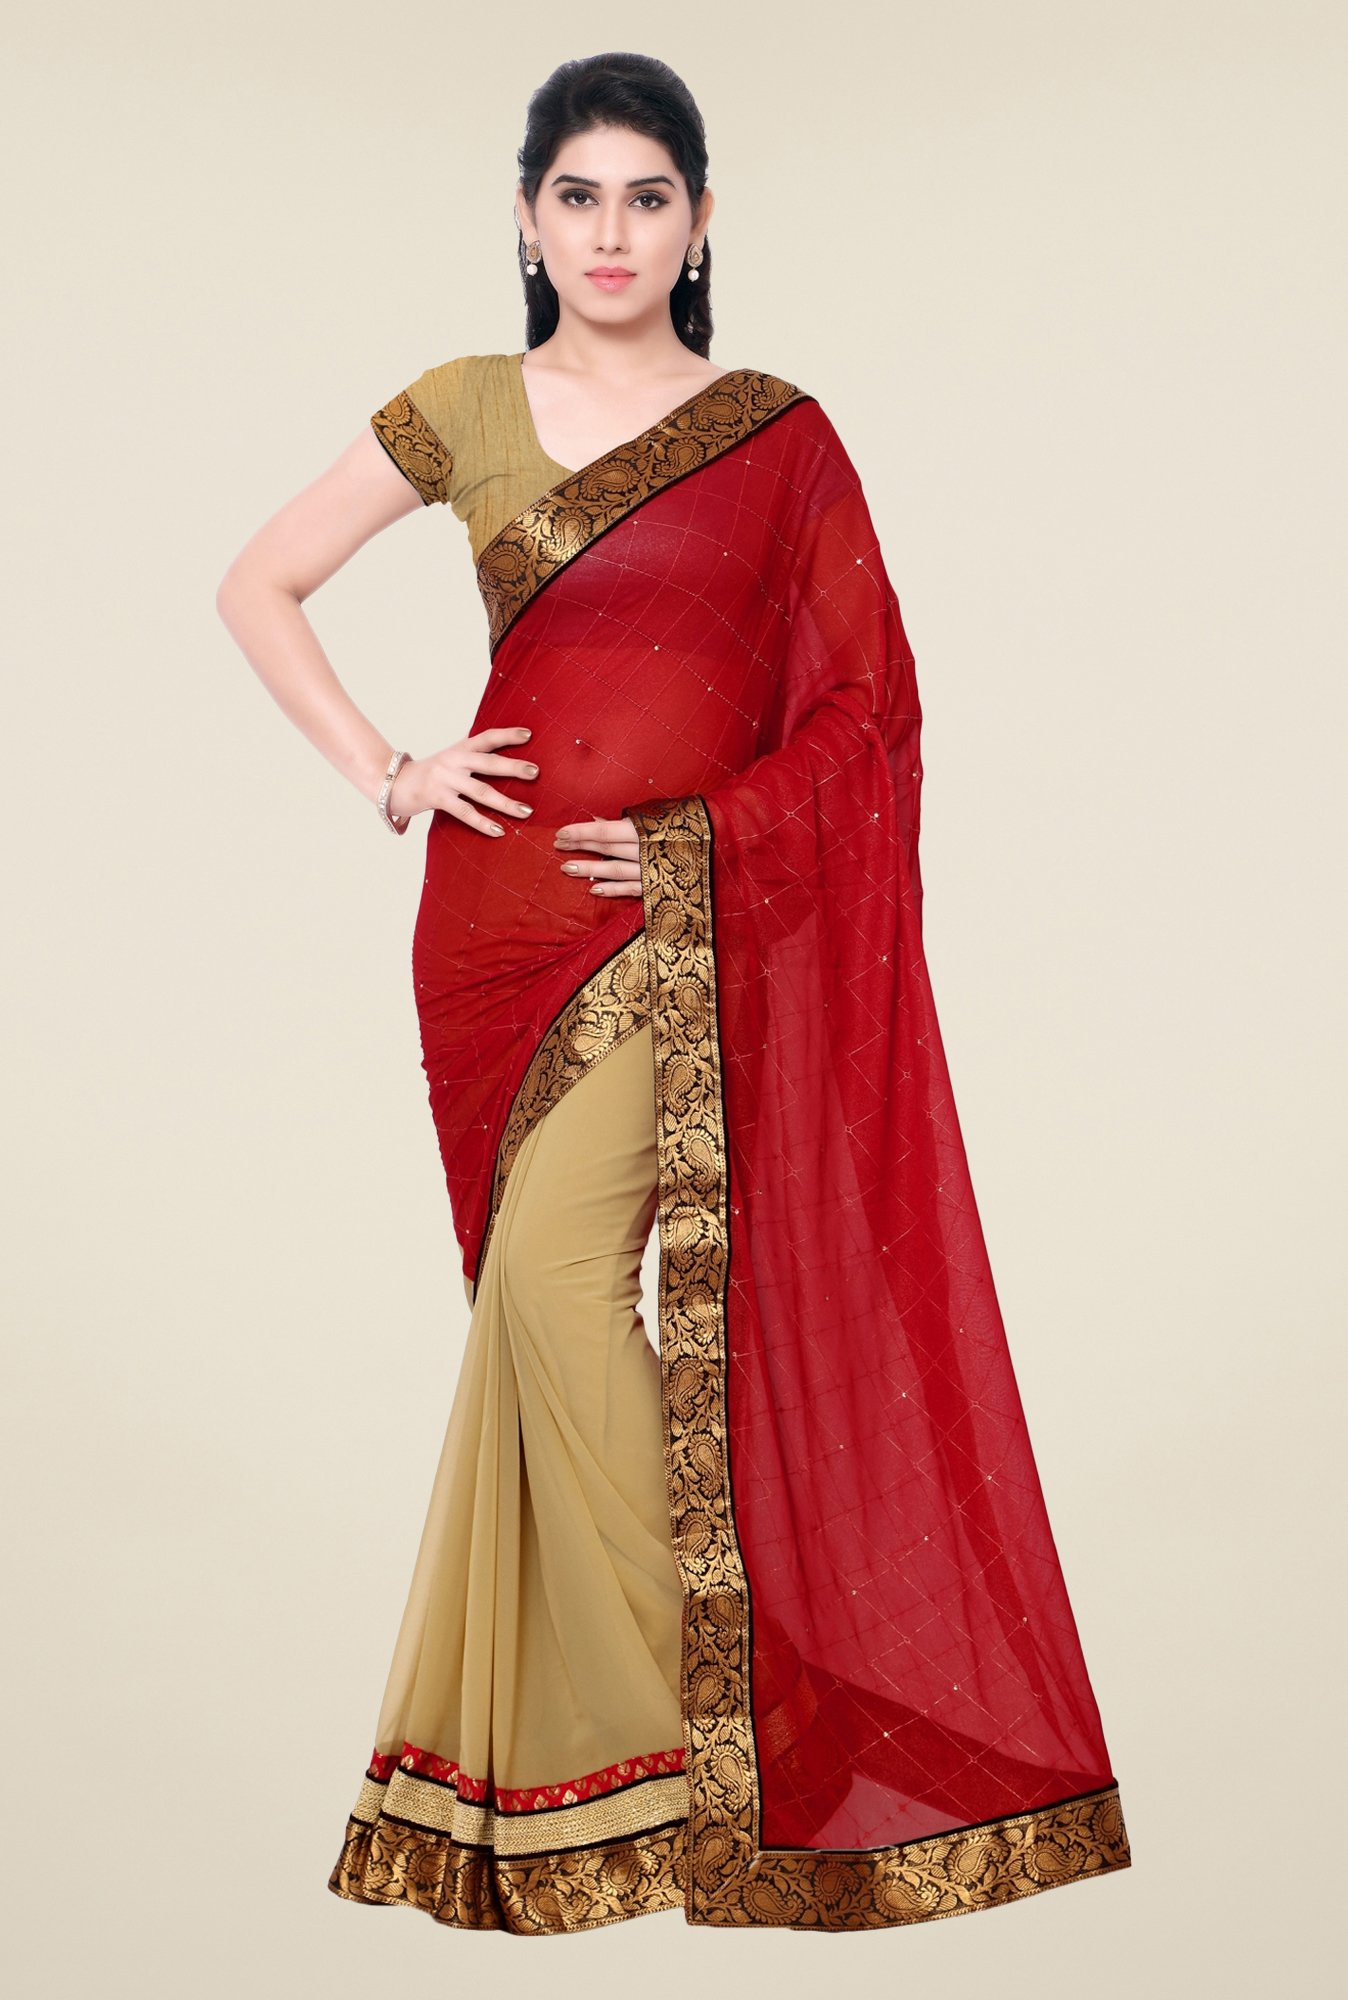 Triveni Beige & Red Solid Faux Georgette Saree